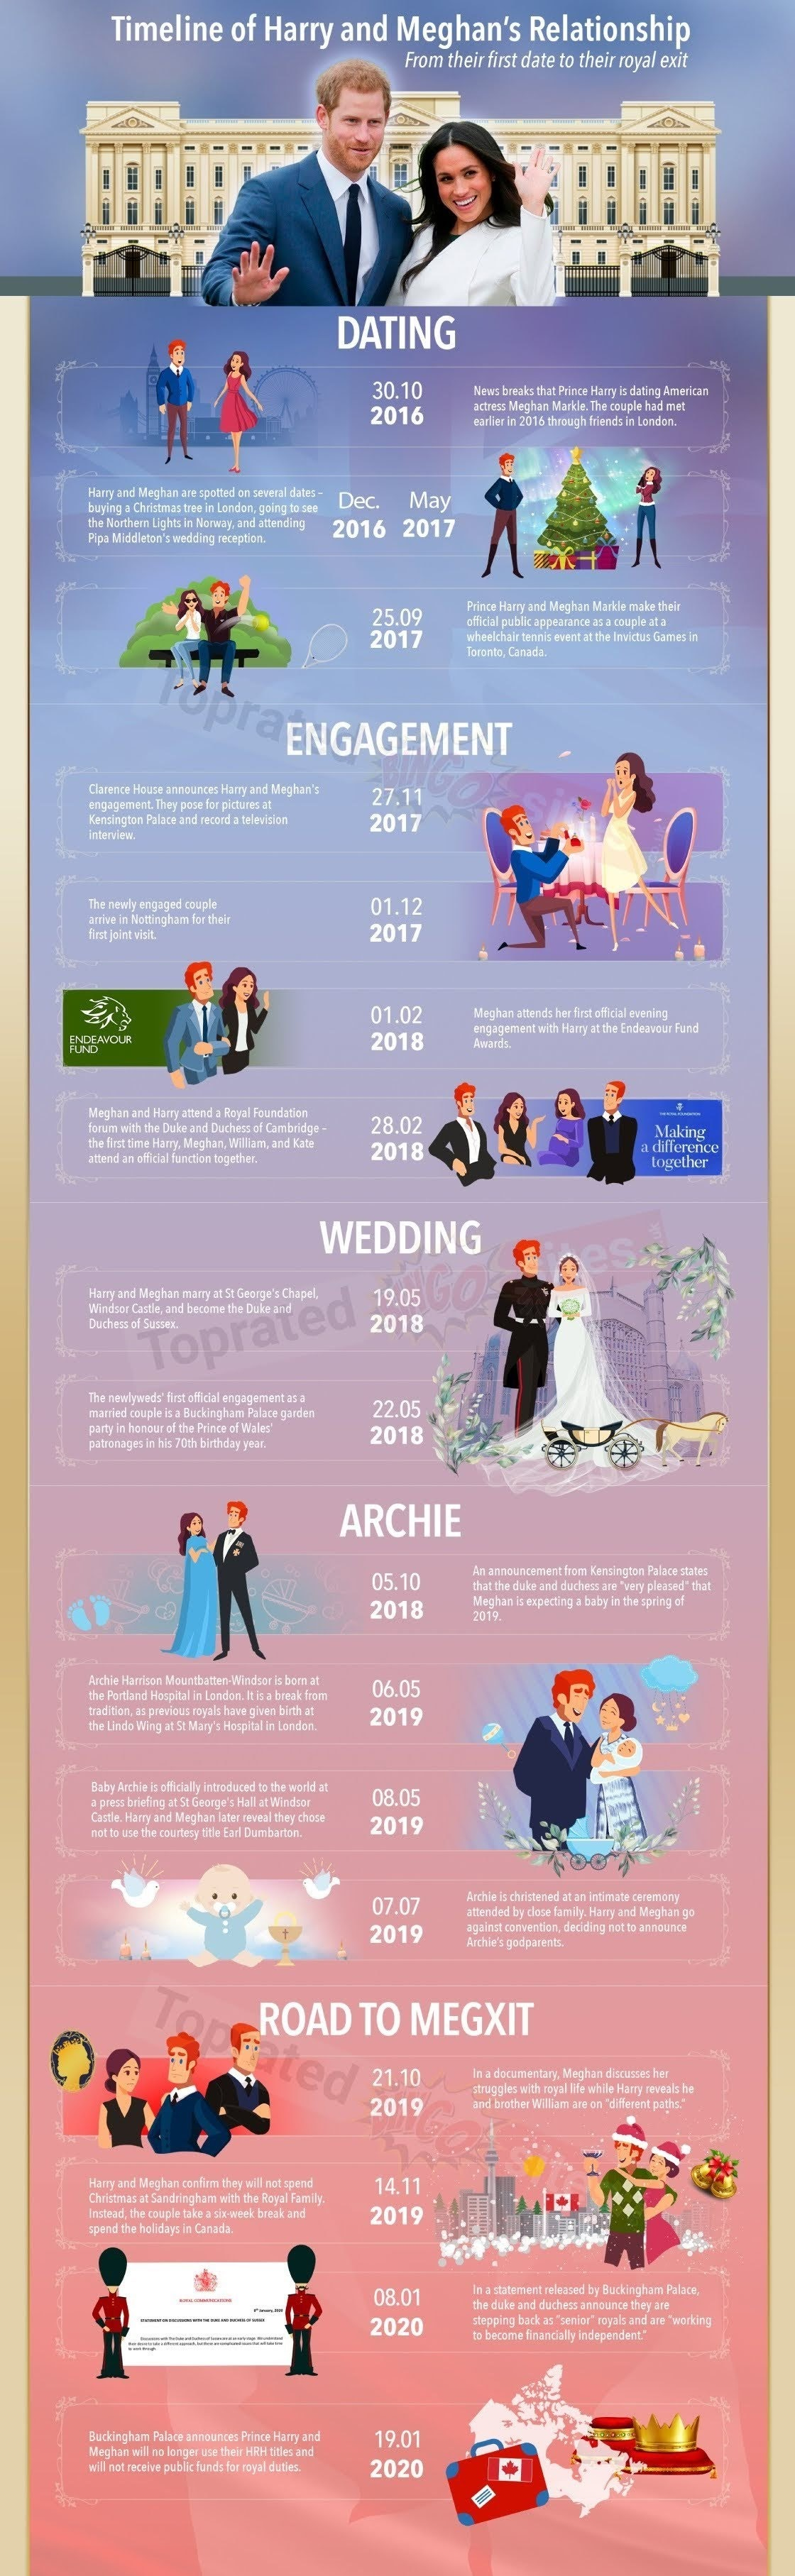 Timeline of Harry and Meghan's Relationship #infographic